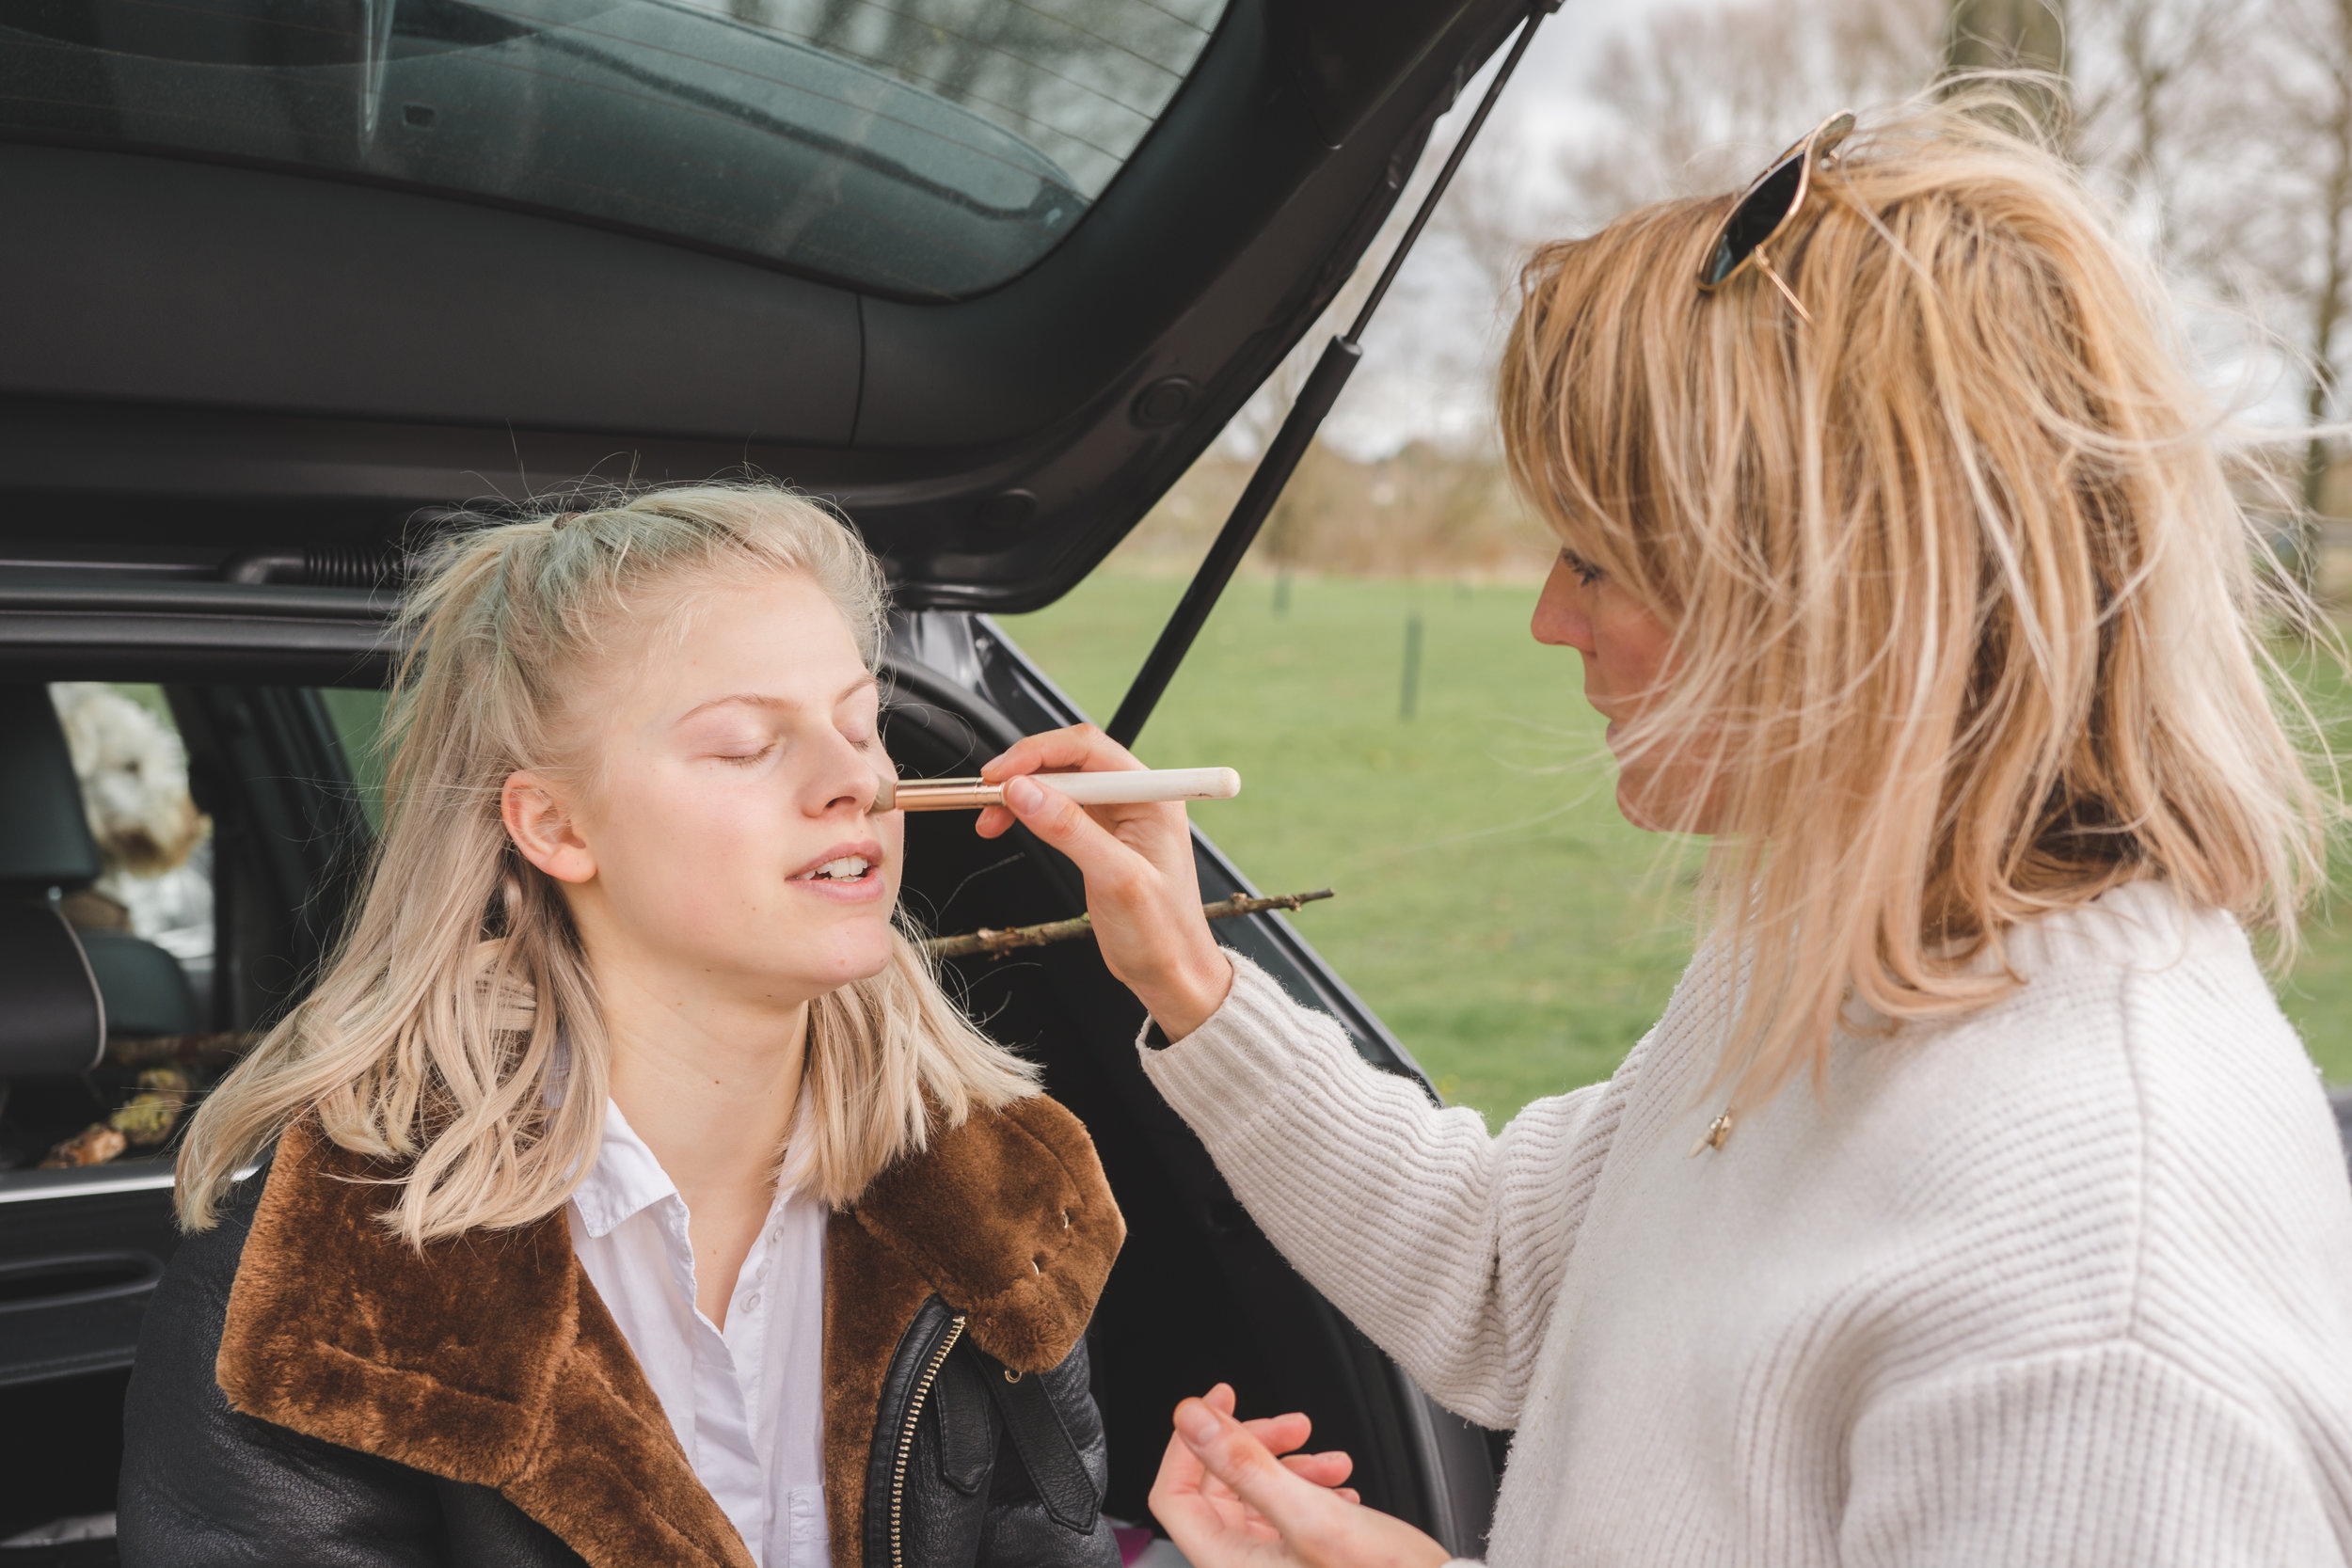 me applying makeup in the back of a car (2019)